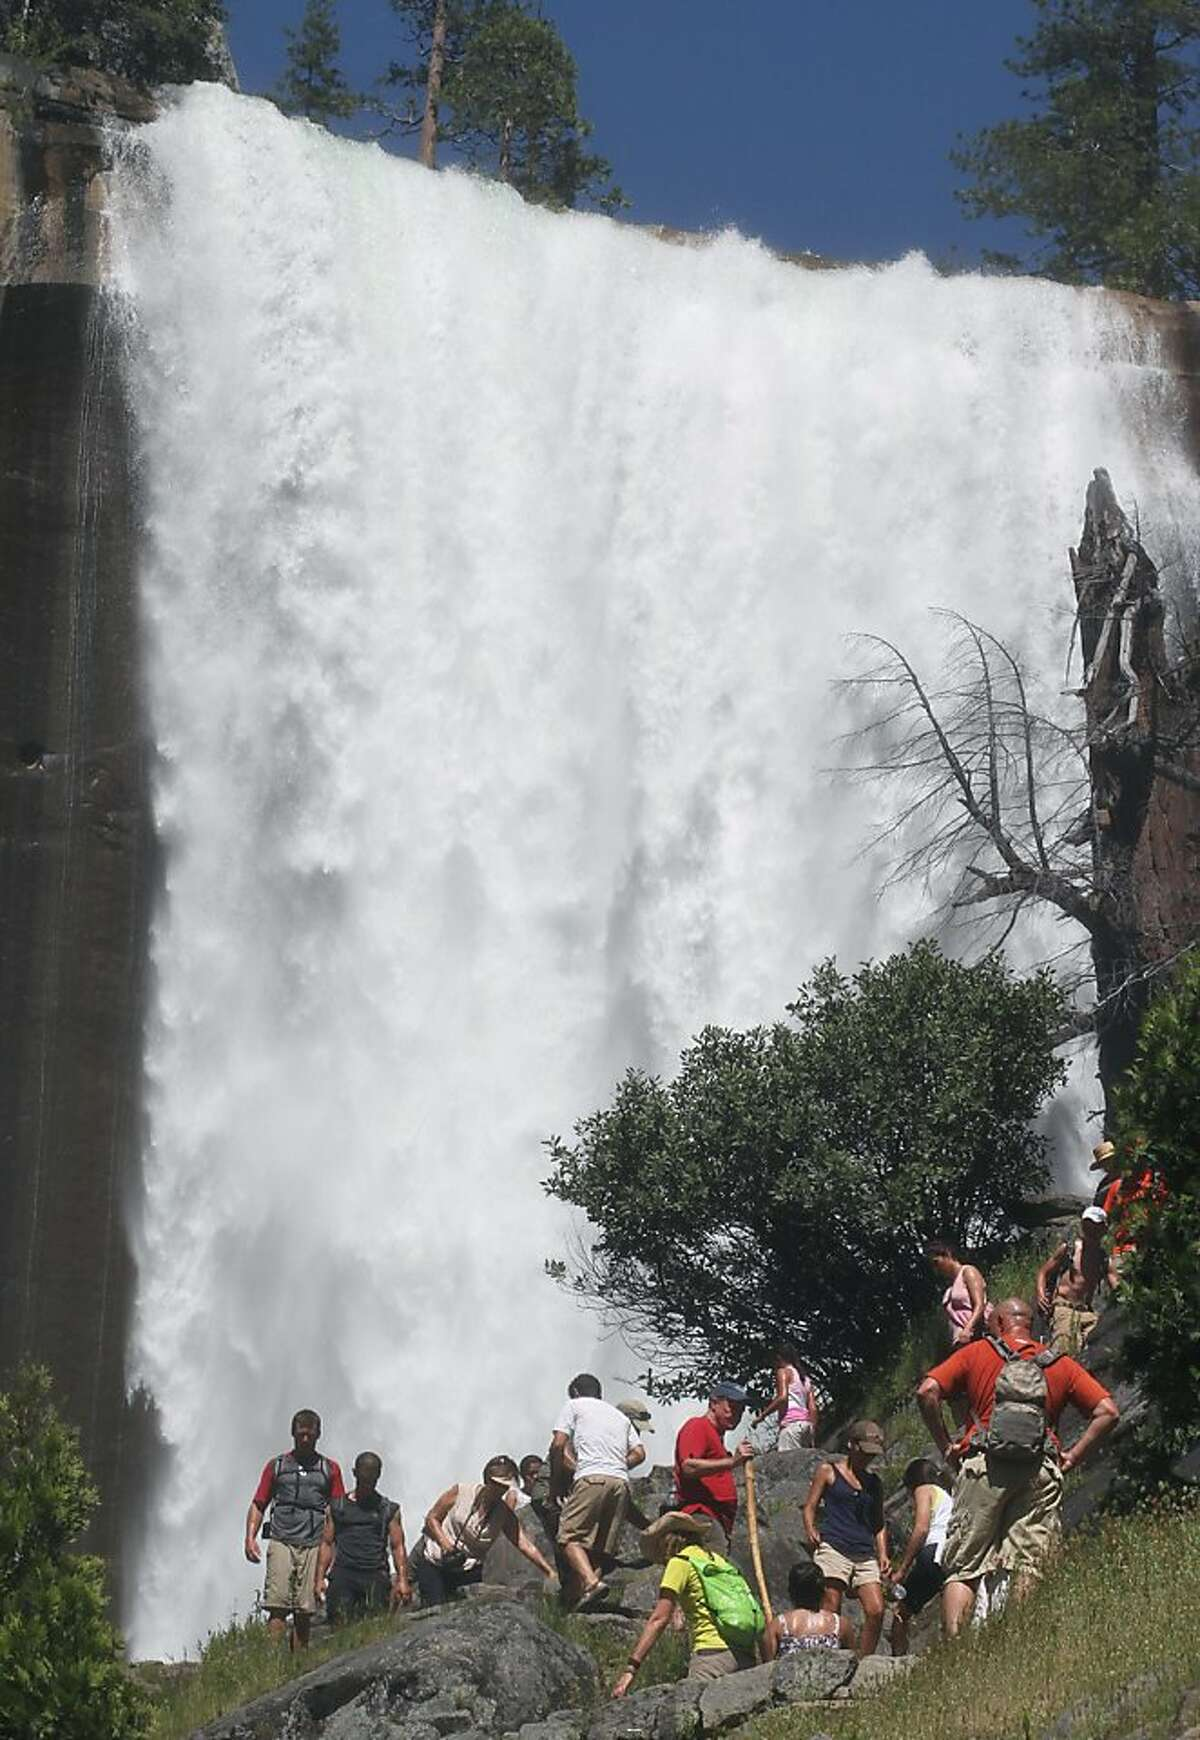 Hikers approach Vernal Fall, background, in Yosemite National Park in California on Wednesday, July 20, 2011, a day after three visitors reportedly died after getting swept over the waterfall. (Eric Paul Zamora/Fresno Bee/MCT)